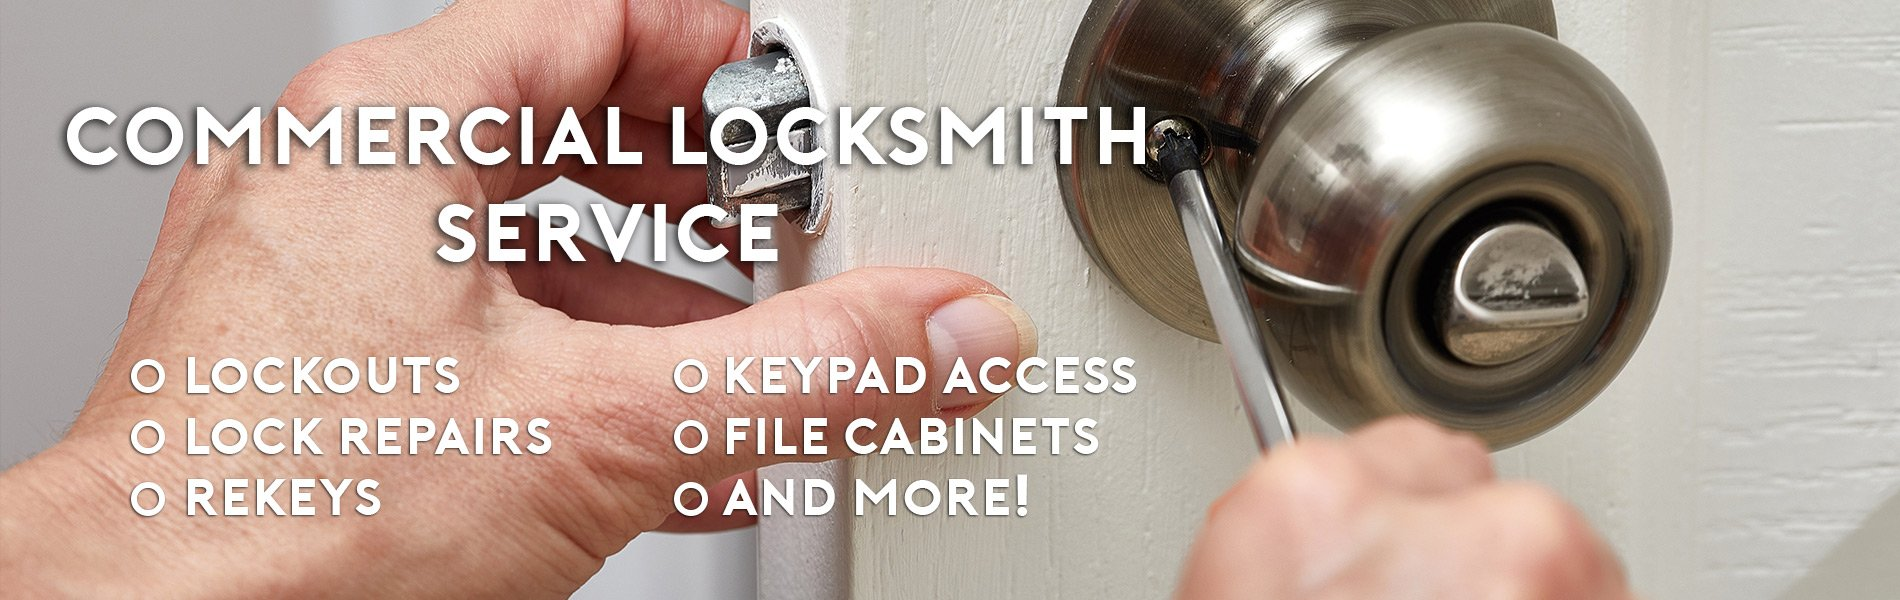 City Locksmith Shop Harrisburg, NC 704-323-7425